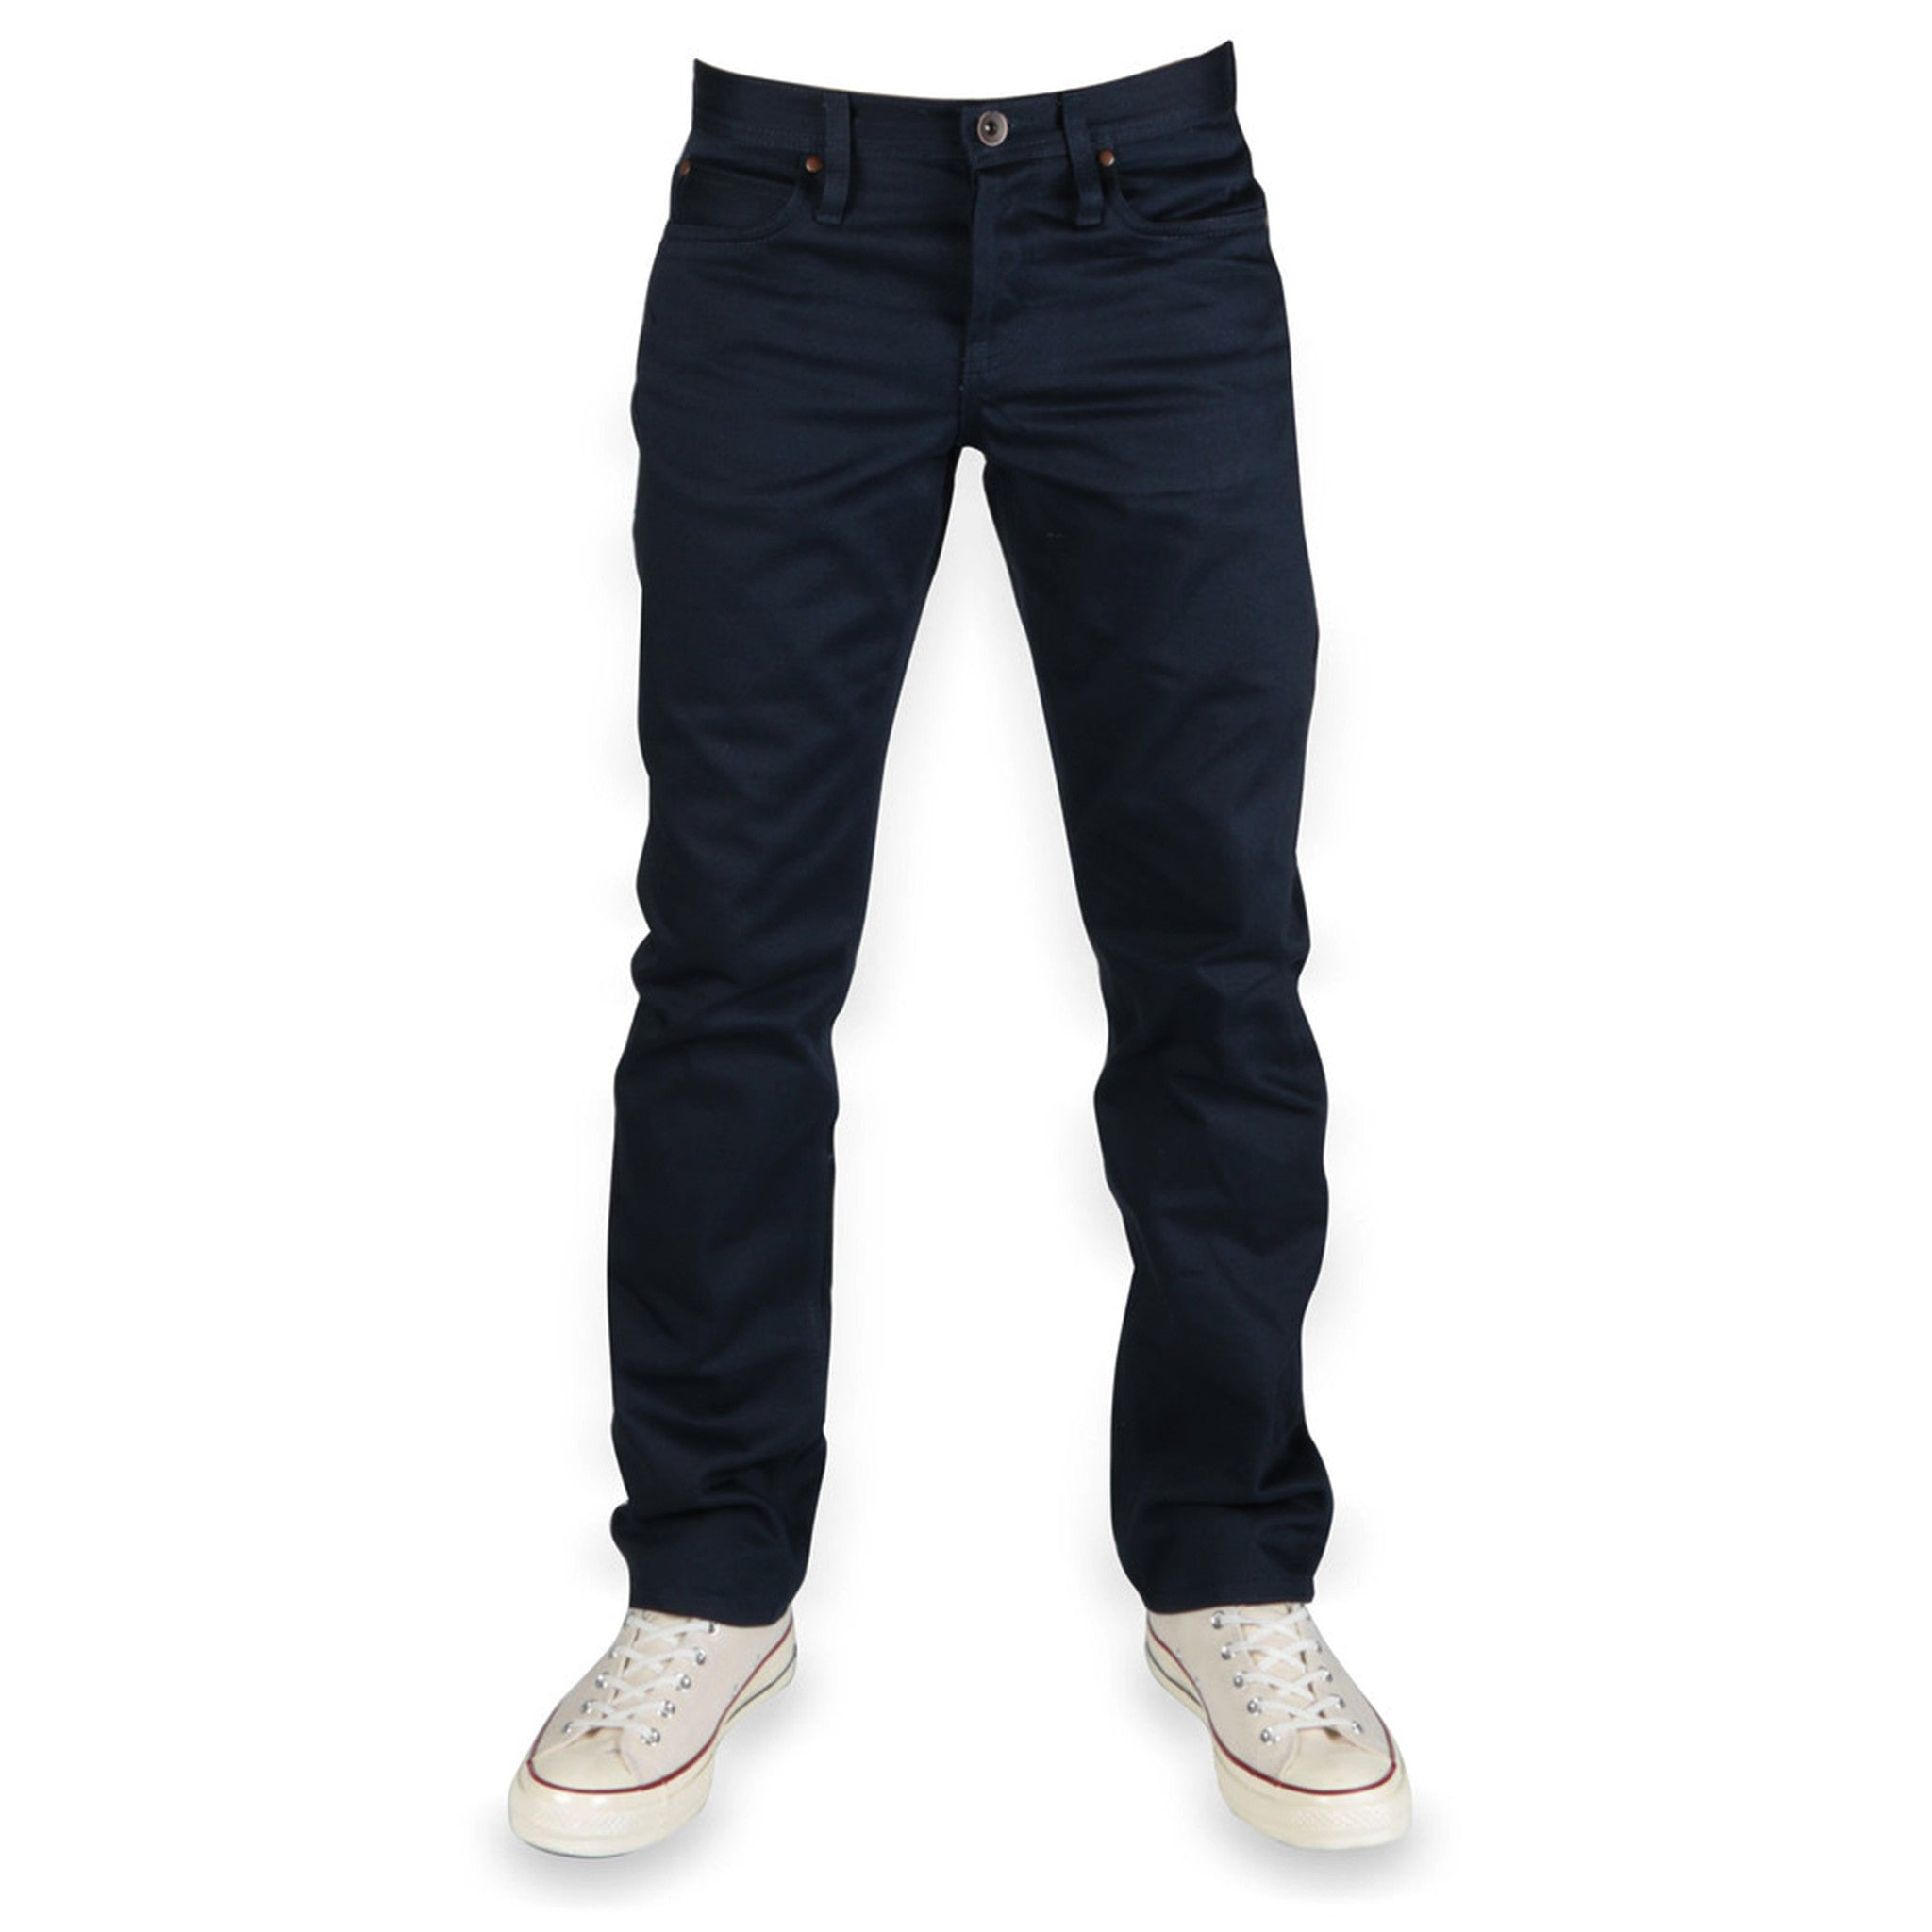 UB108 Skinny Fit 13oz Navy Selvedge Chino